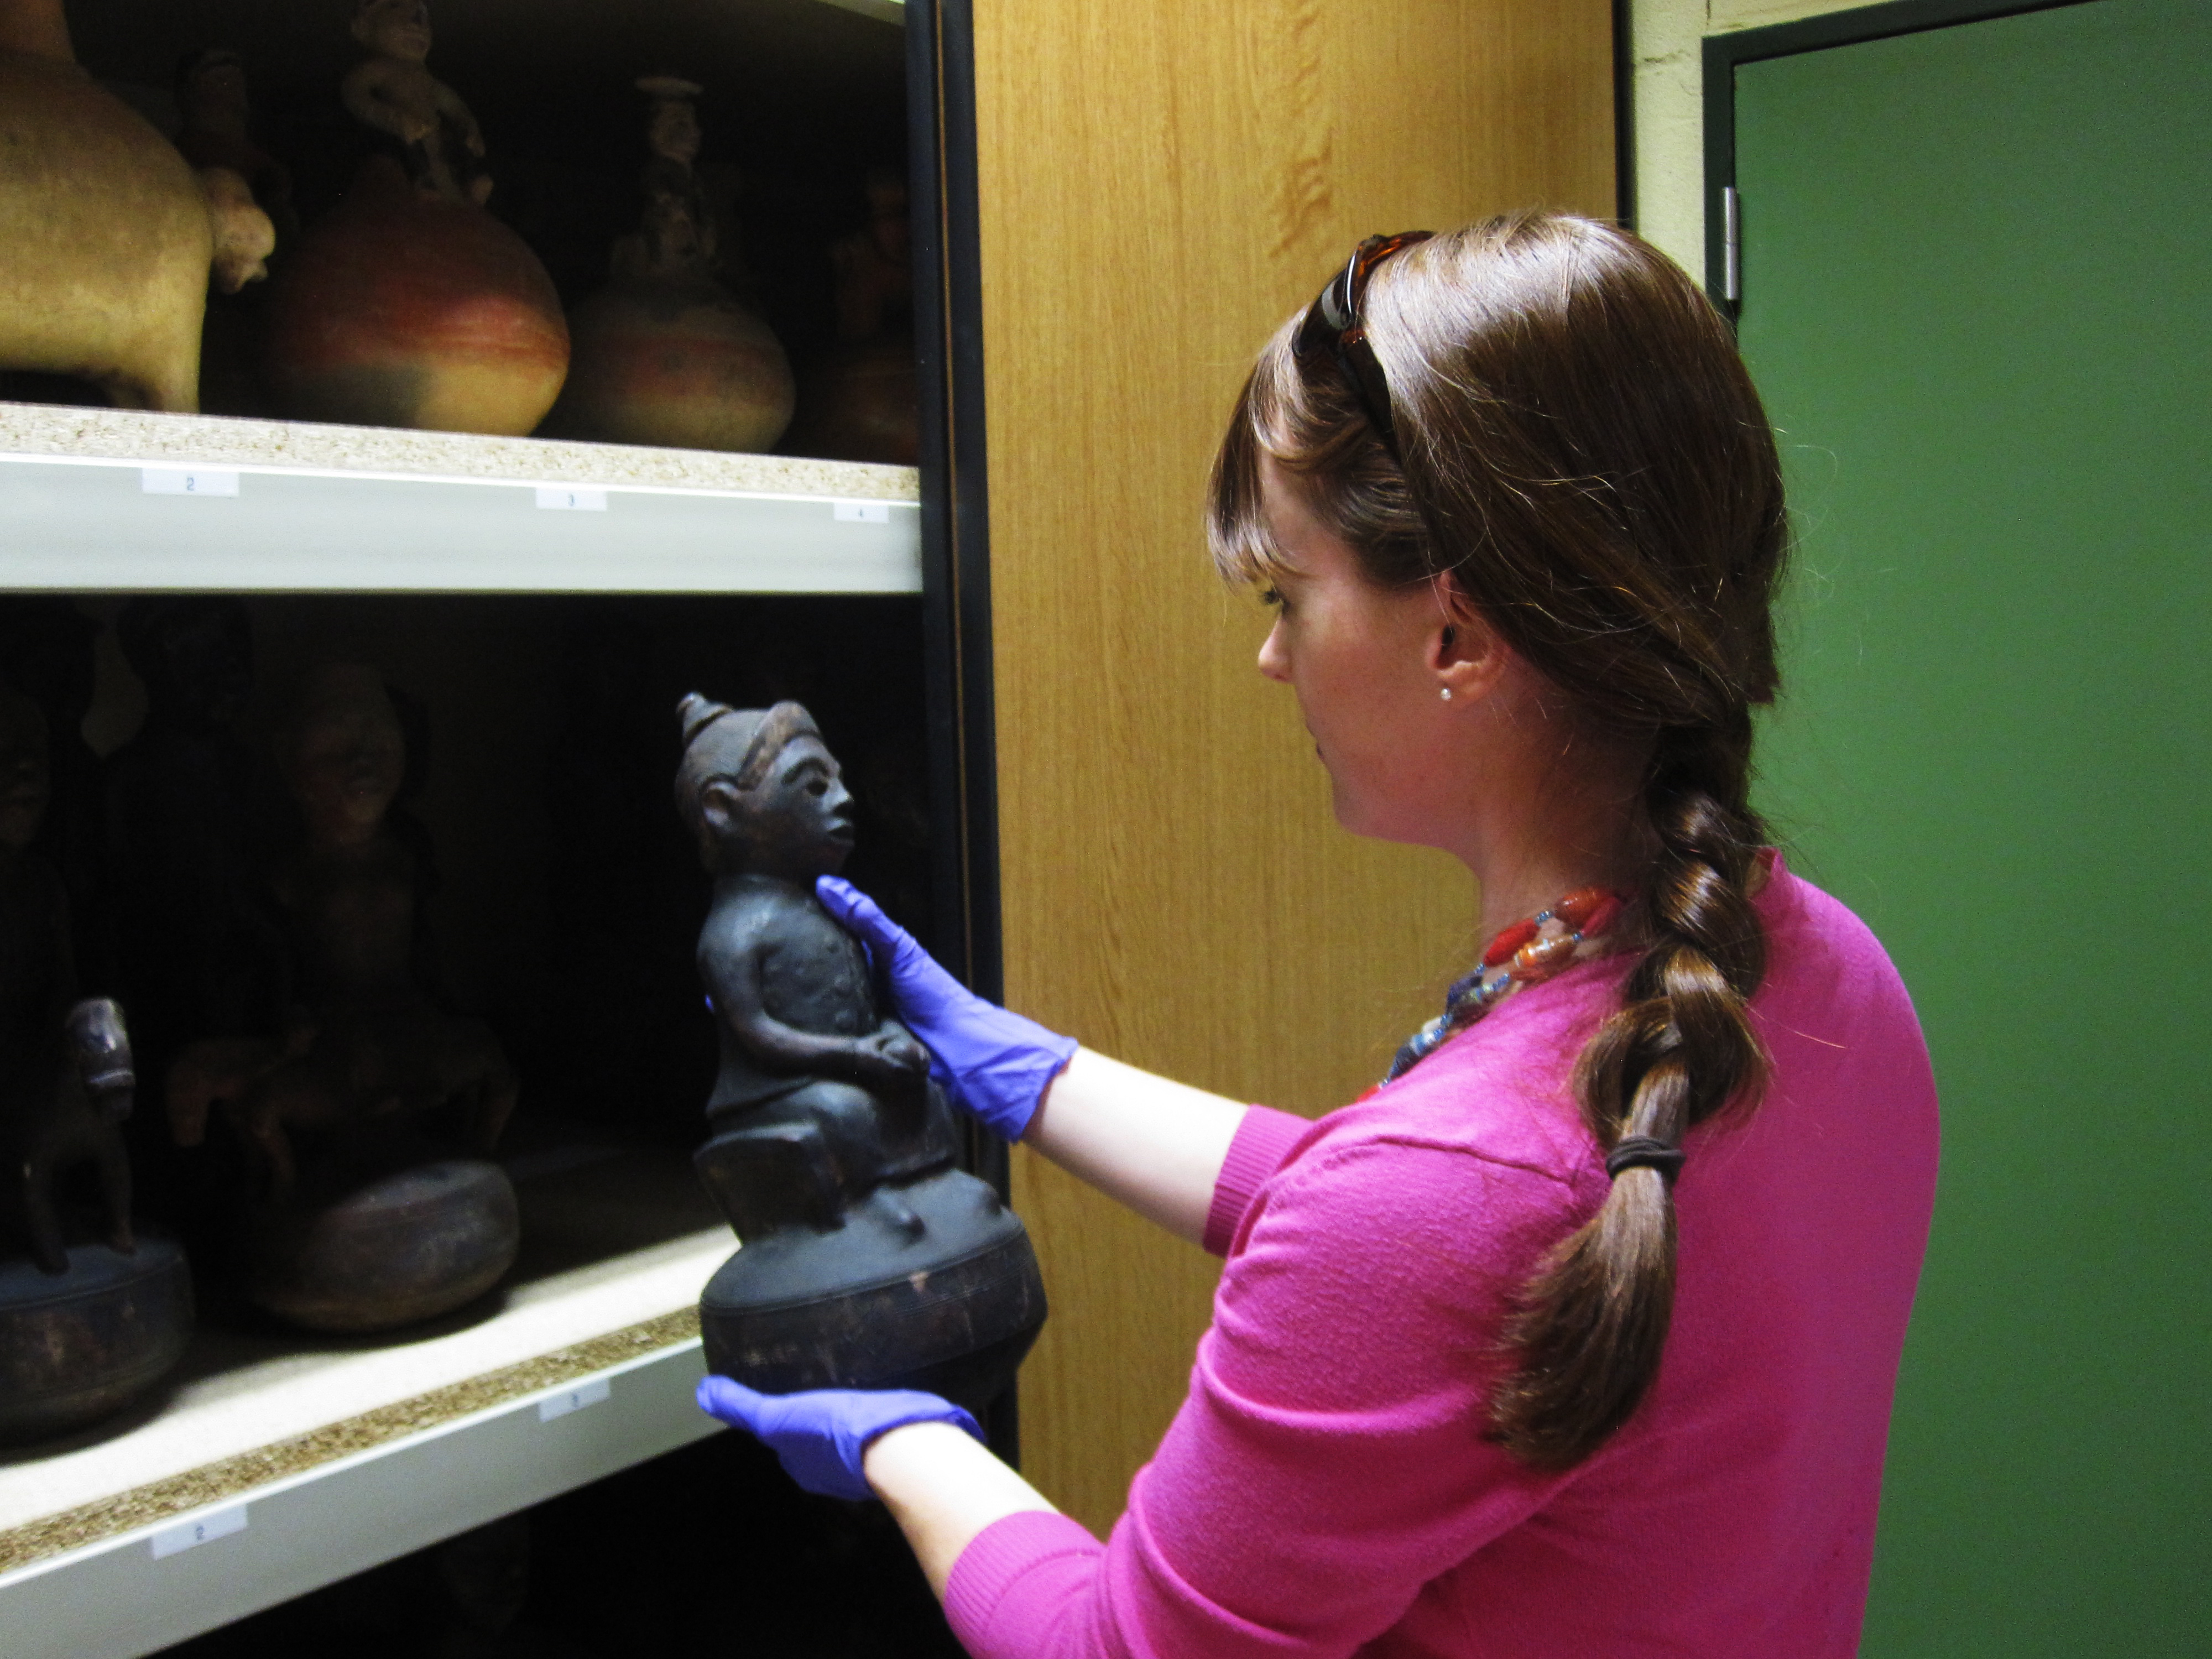 Researcher Carlee Forbes pulls a statue from a cabinet.